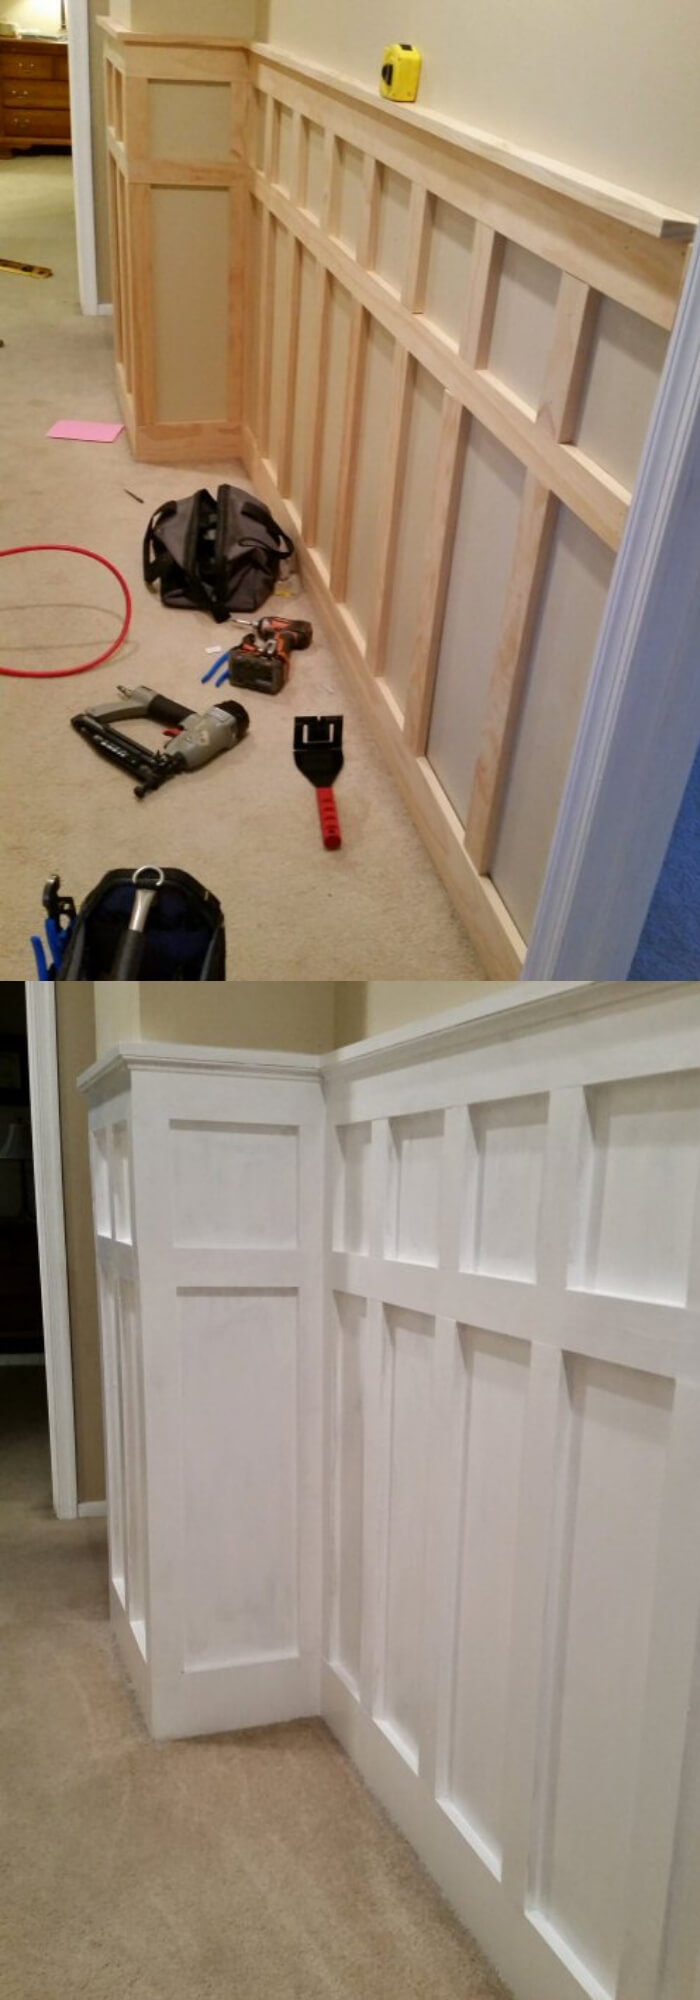 Board and Batten Wainscoting Hallway | Amazing Wainscoting Ideas for Your New Home